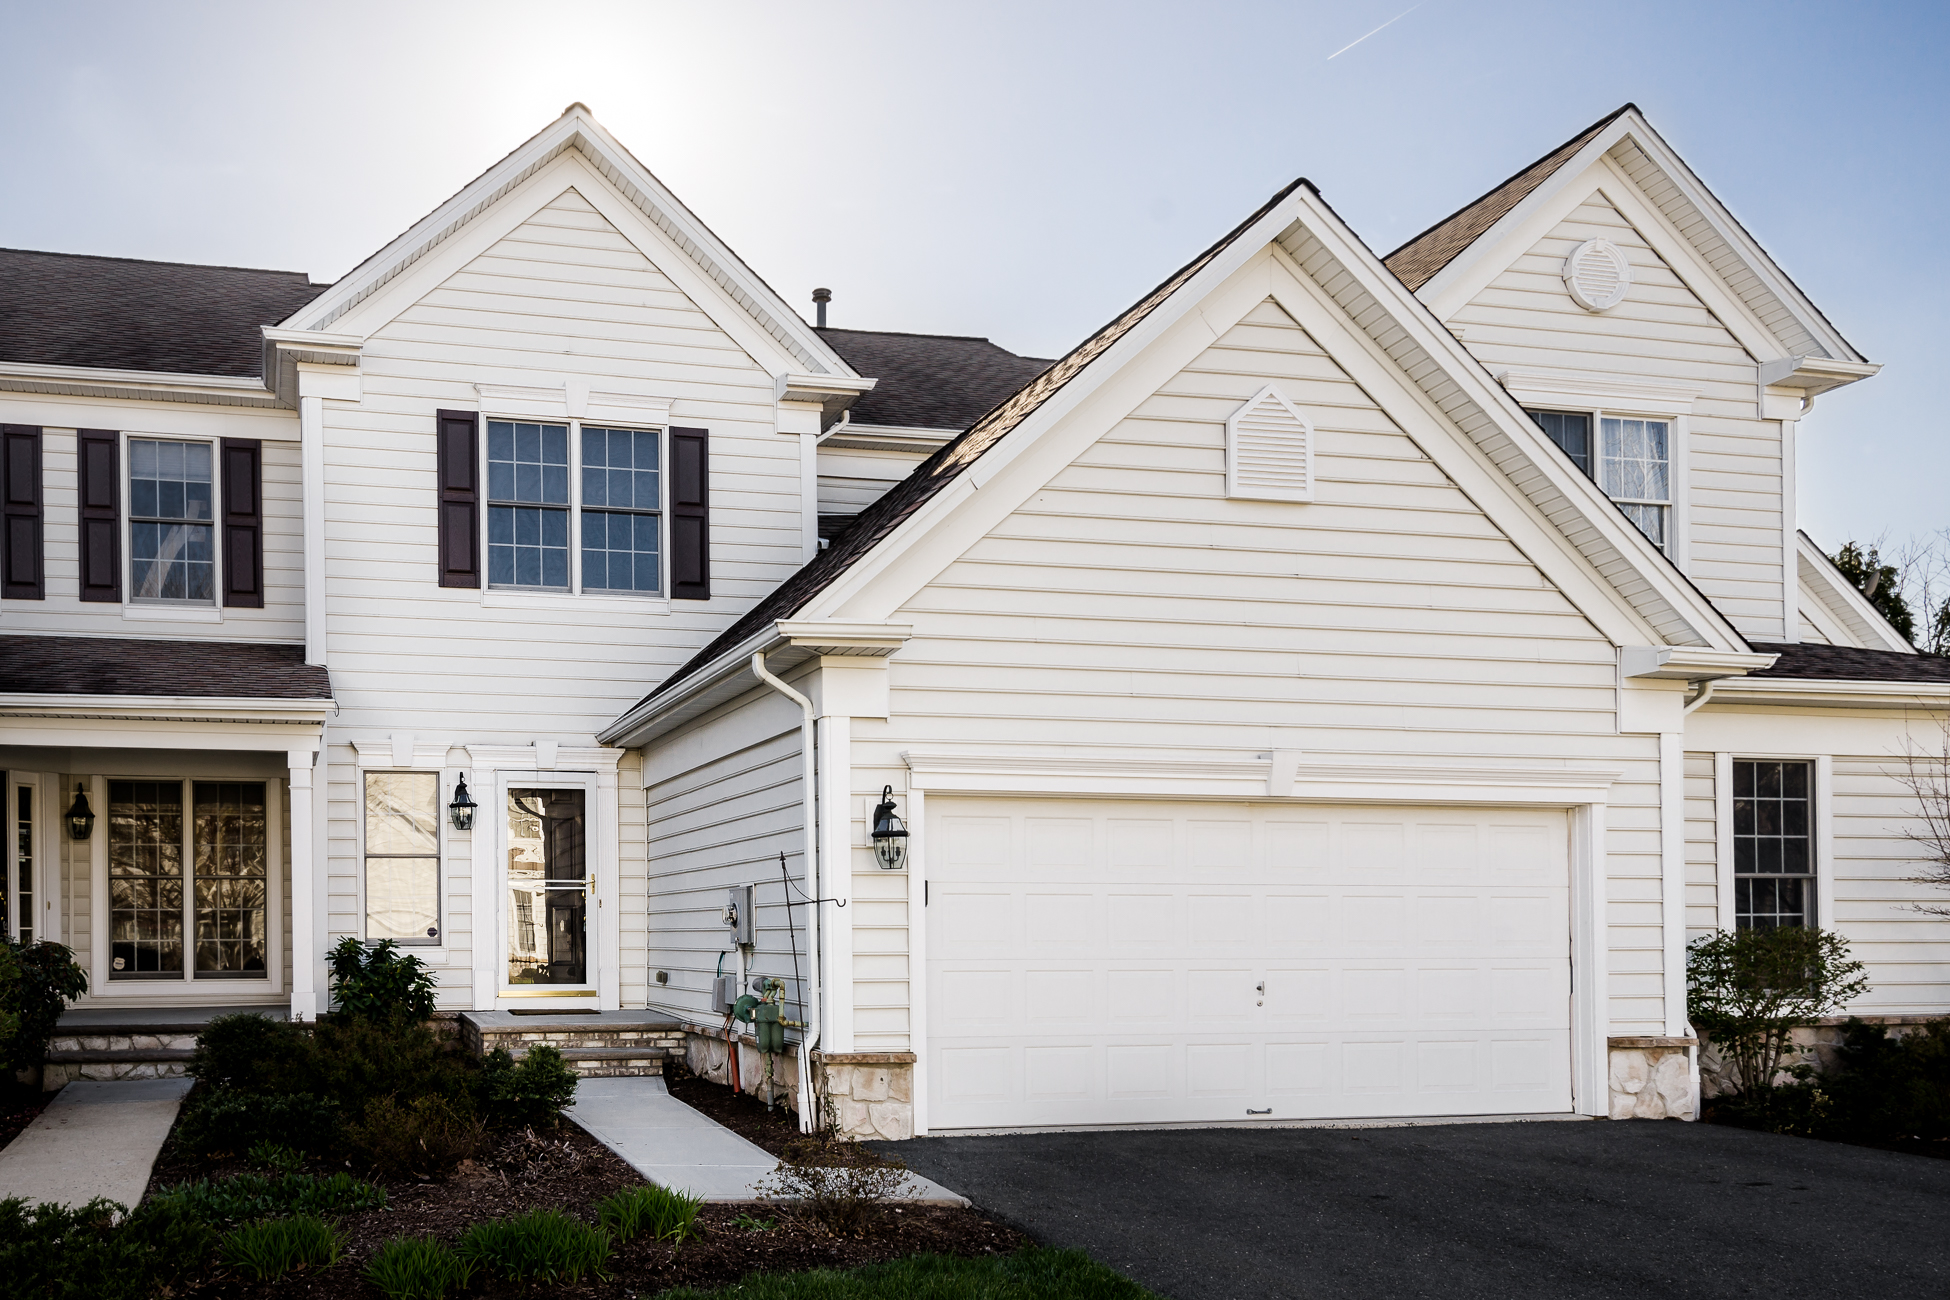 rentals property at Fieldwood Manor Townhouse for Rent